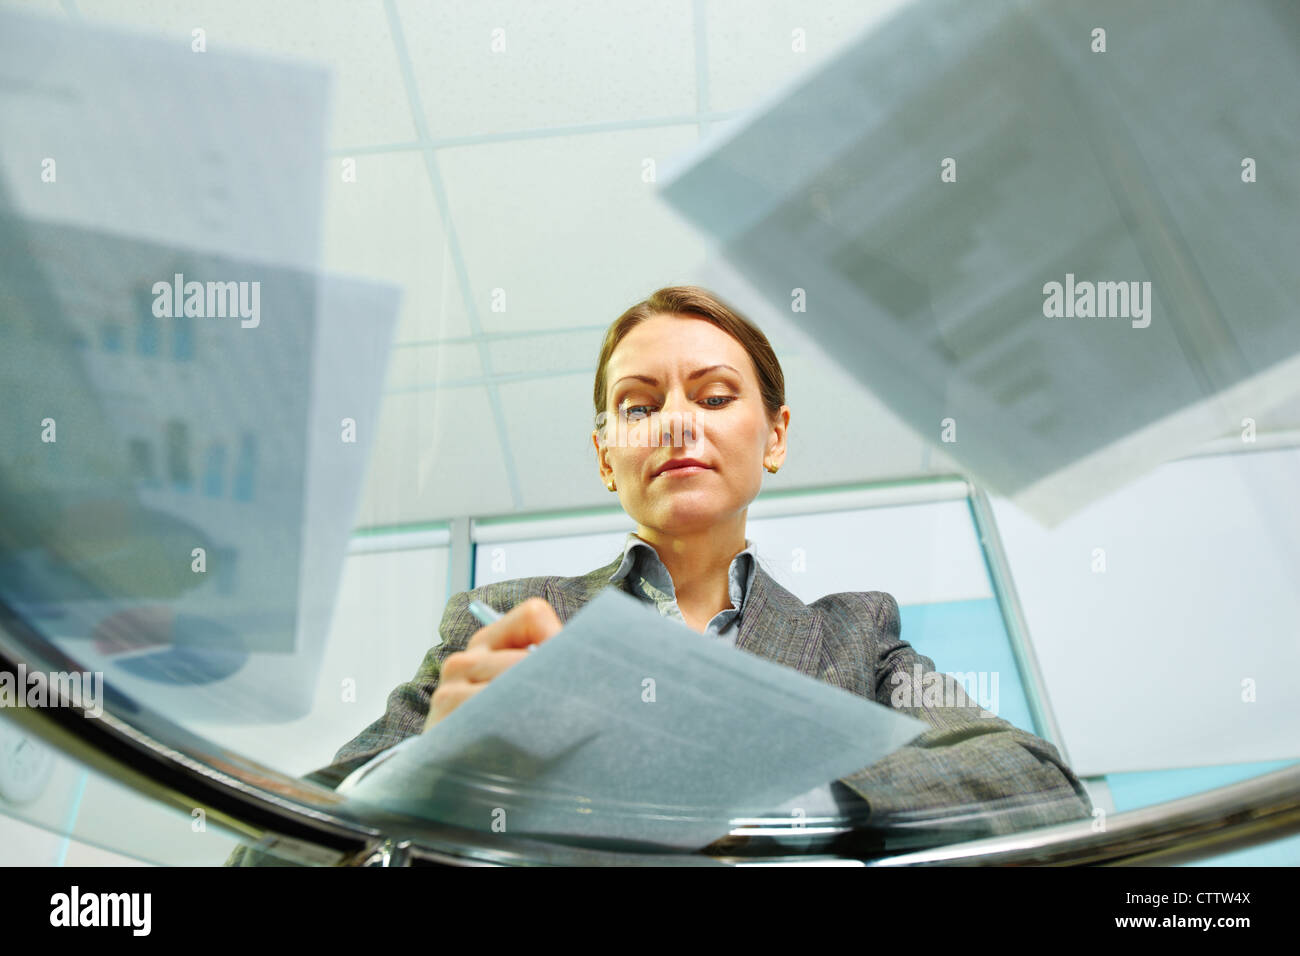 Business woman viewed from below signing documents and working with papers - Stock Image